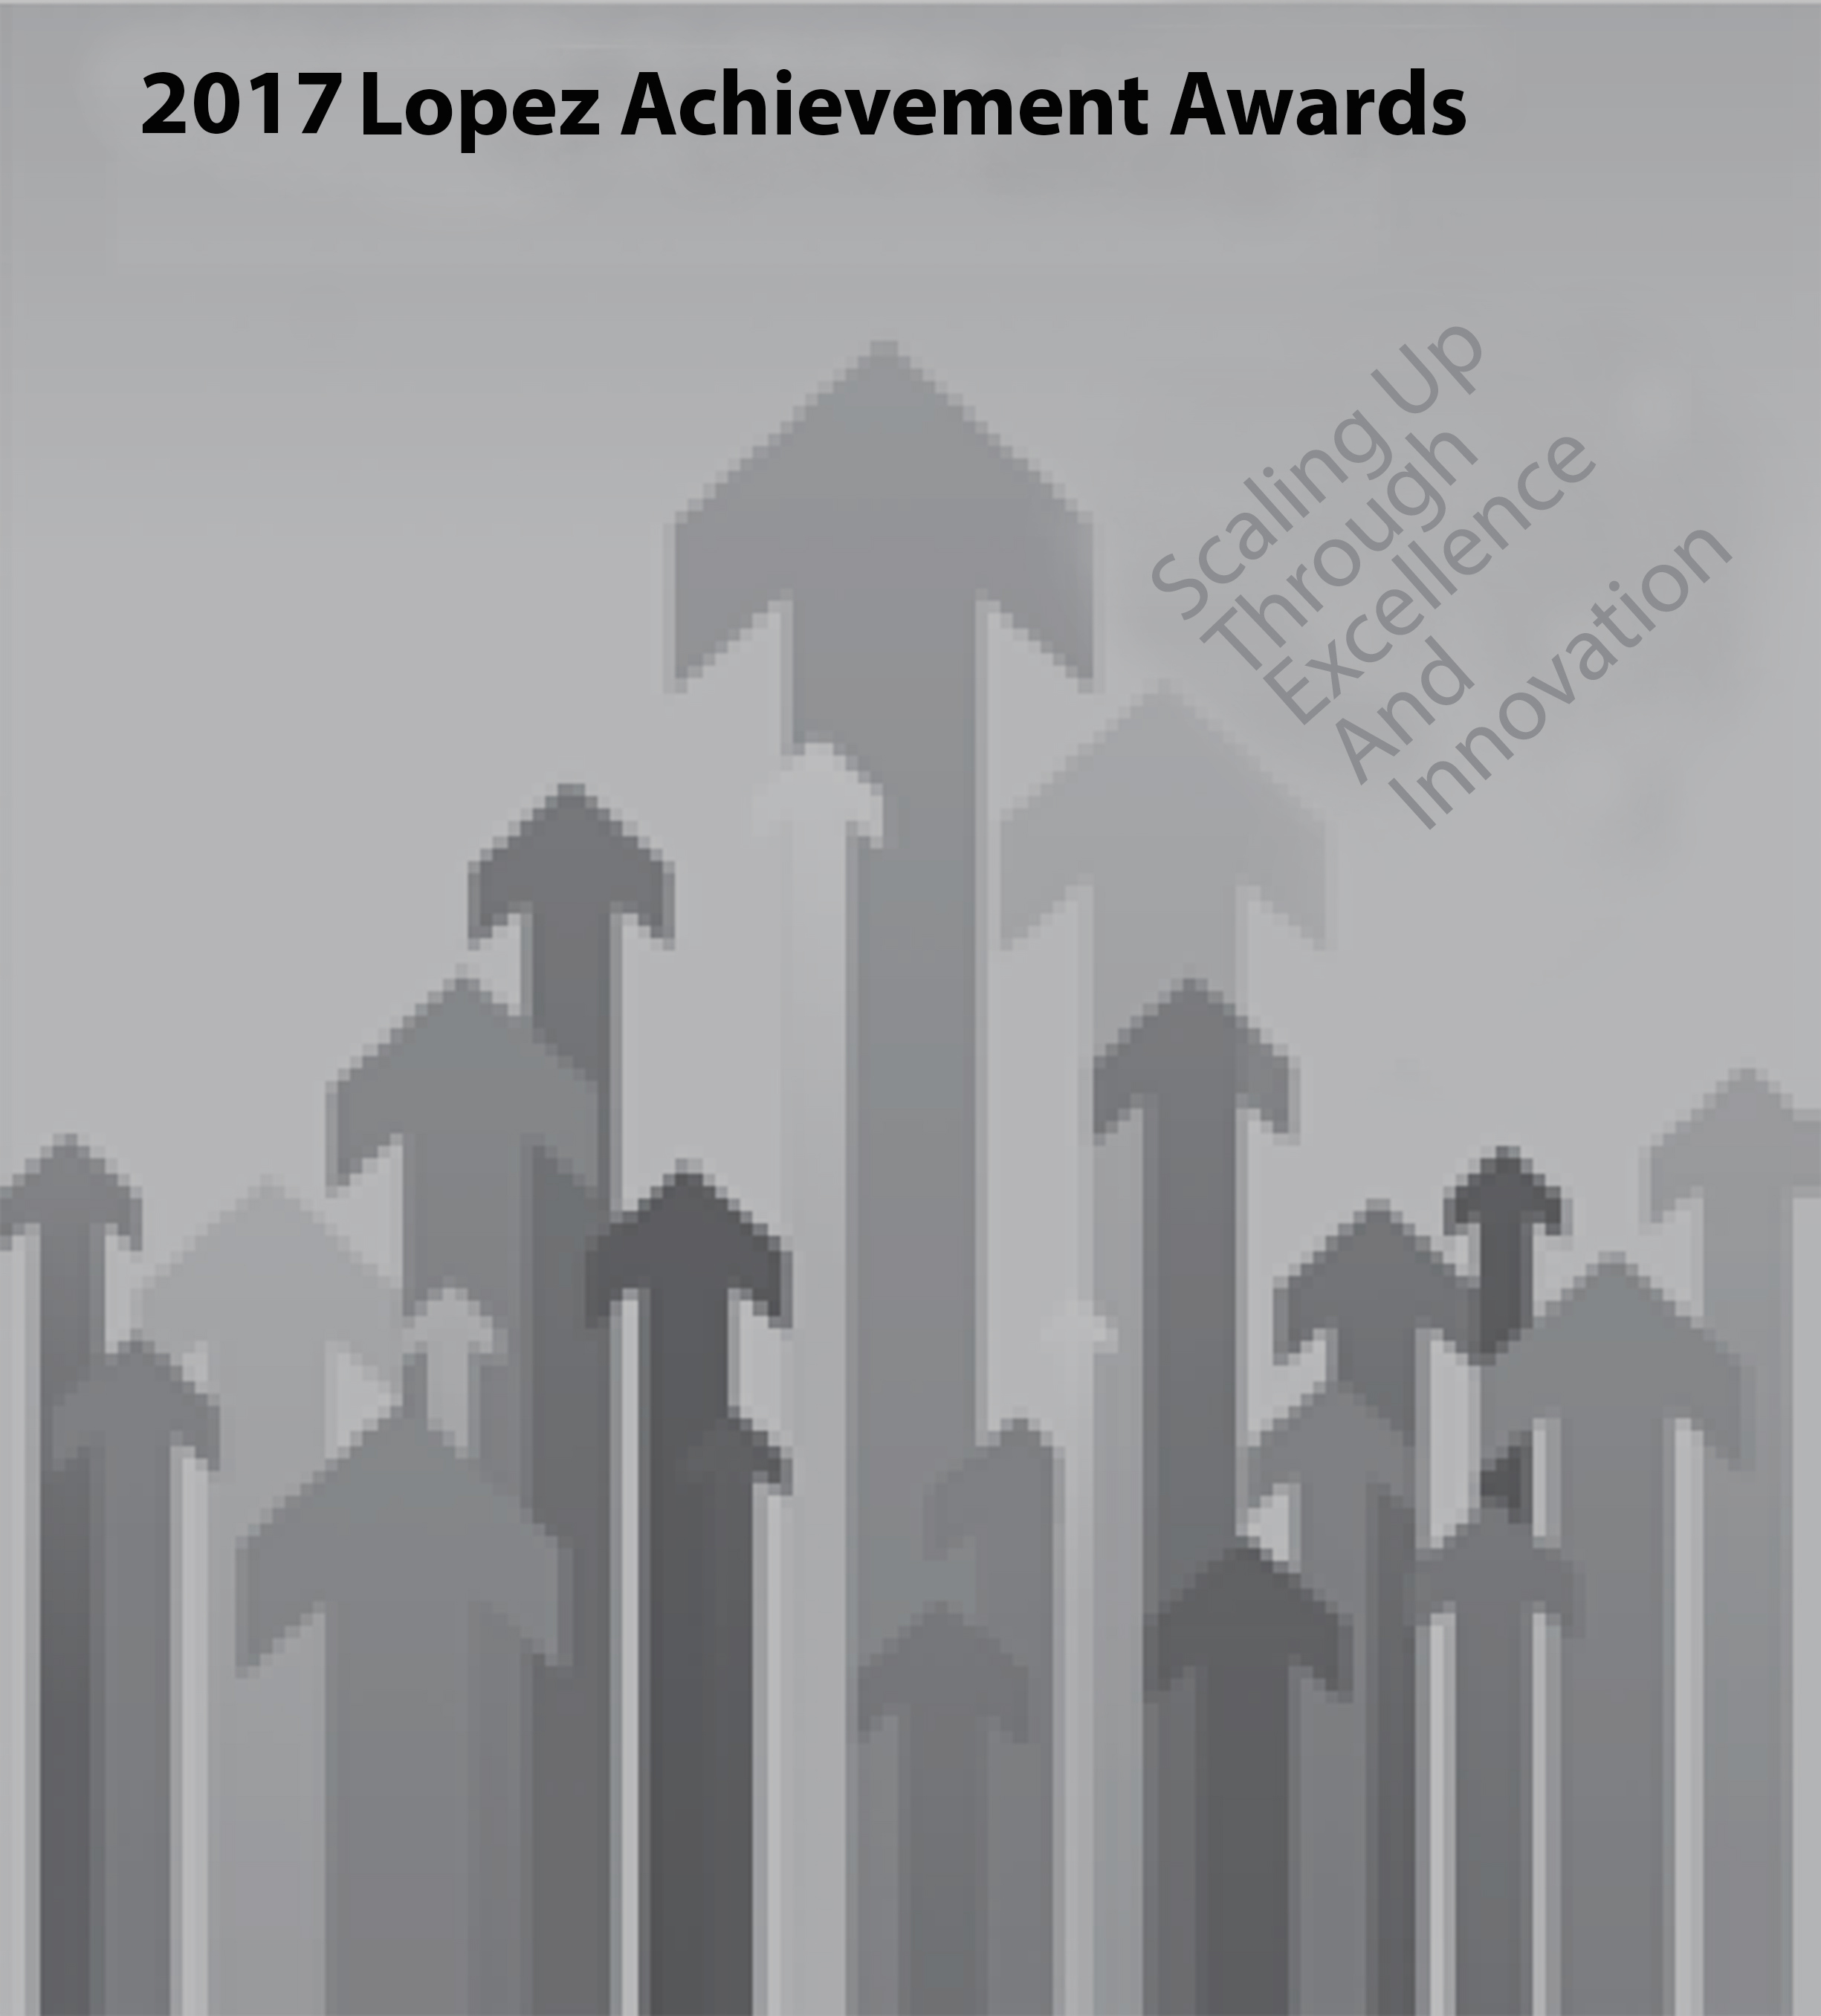 2017 Lopez Achievement Awards